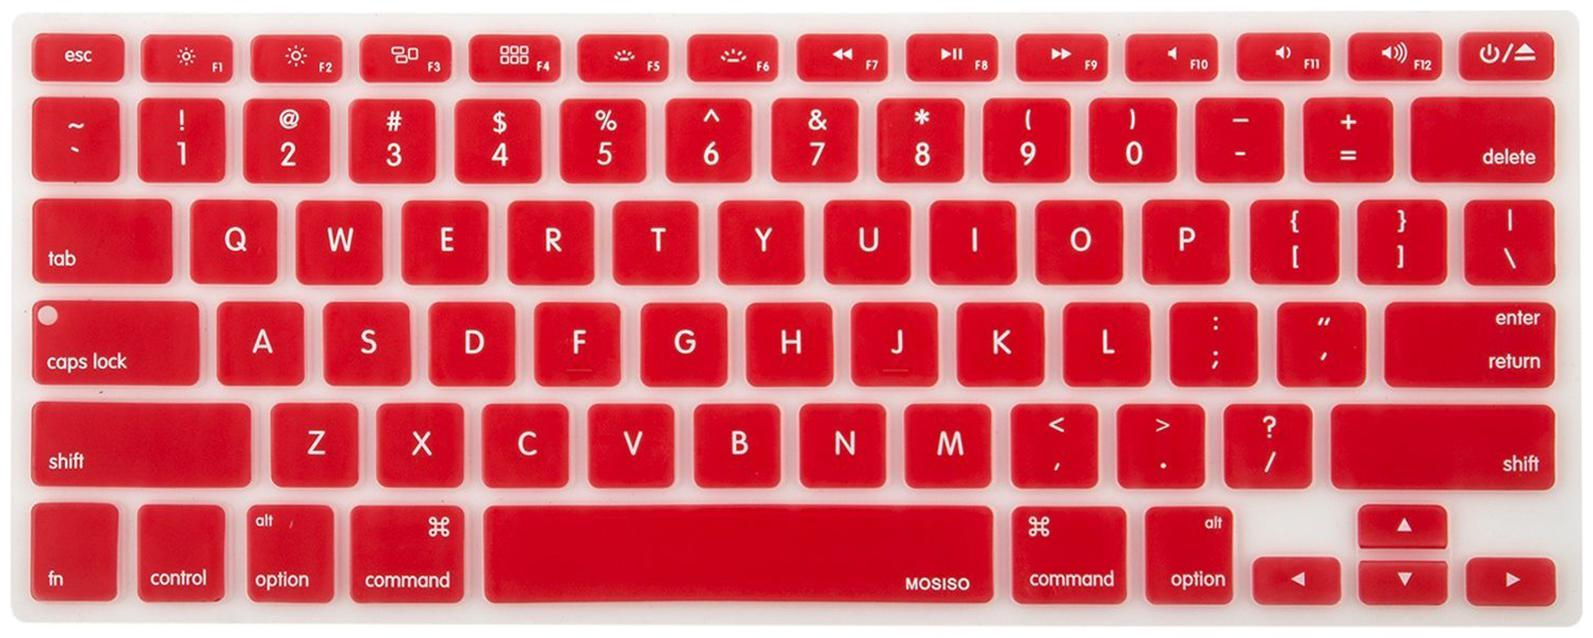 Keyboard Skins - Buy Keyboard Skins at Best Price in India